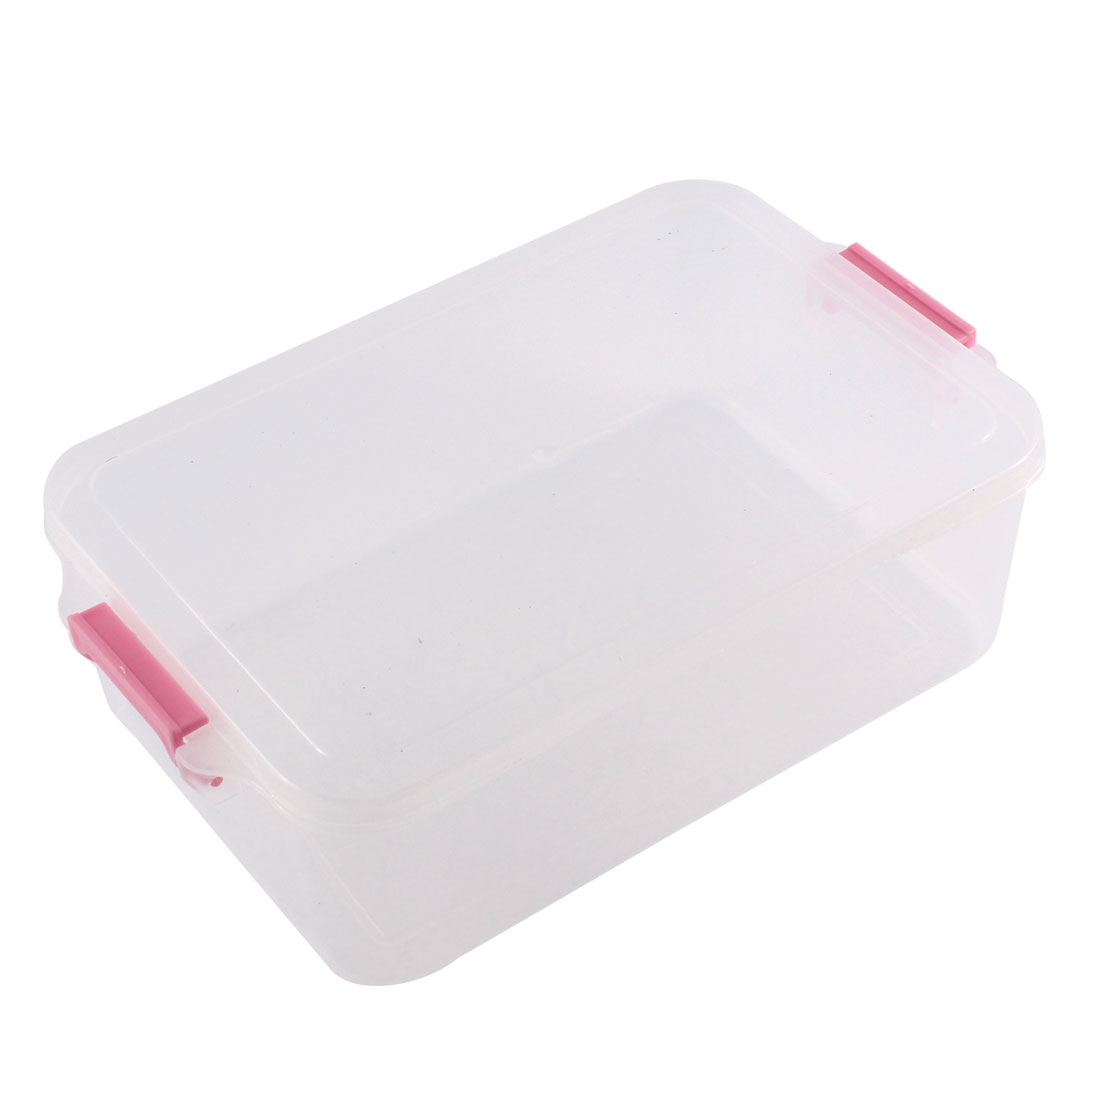 Cold Resistance Multifunctional Bento Crisper Case Food Storage Box Pink Clear